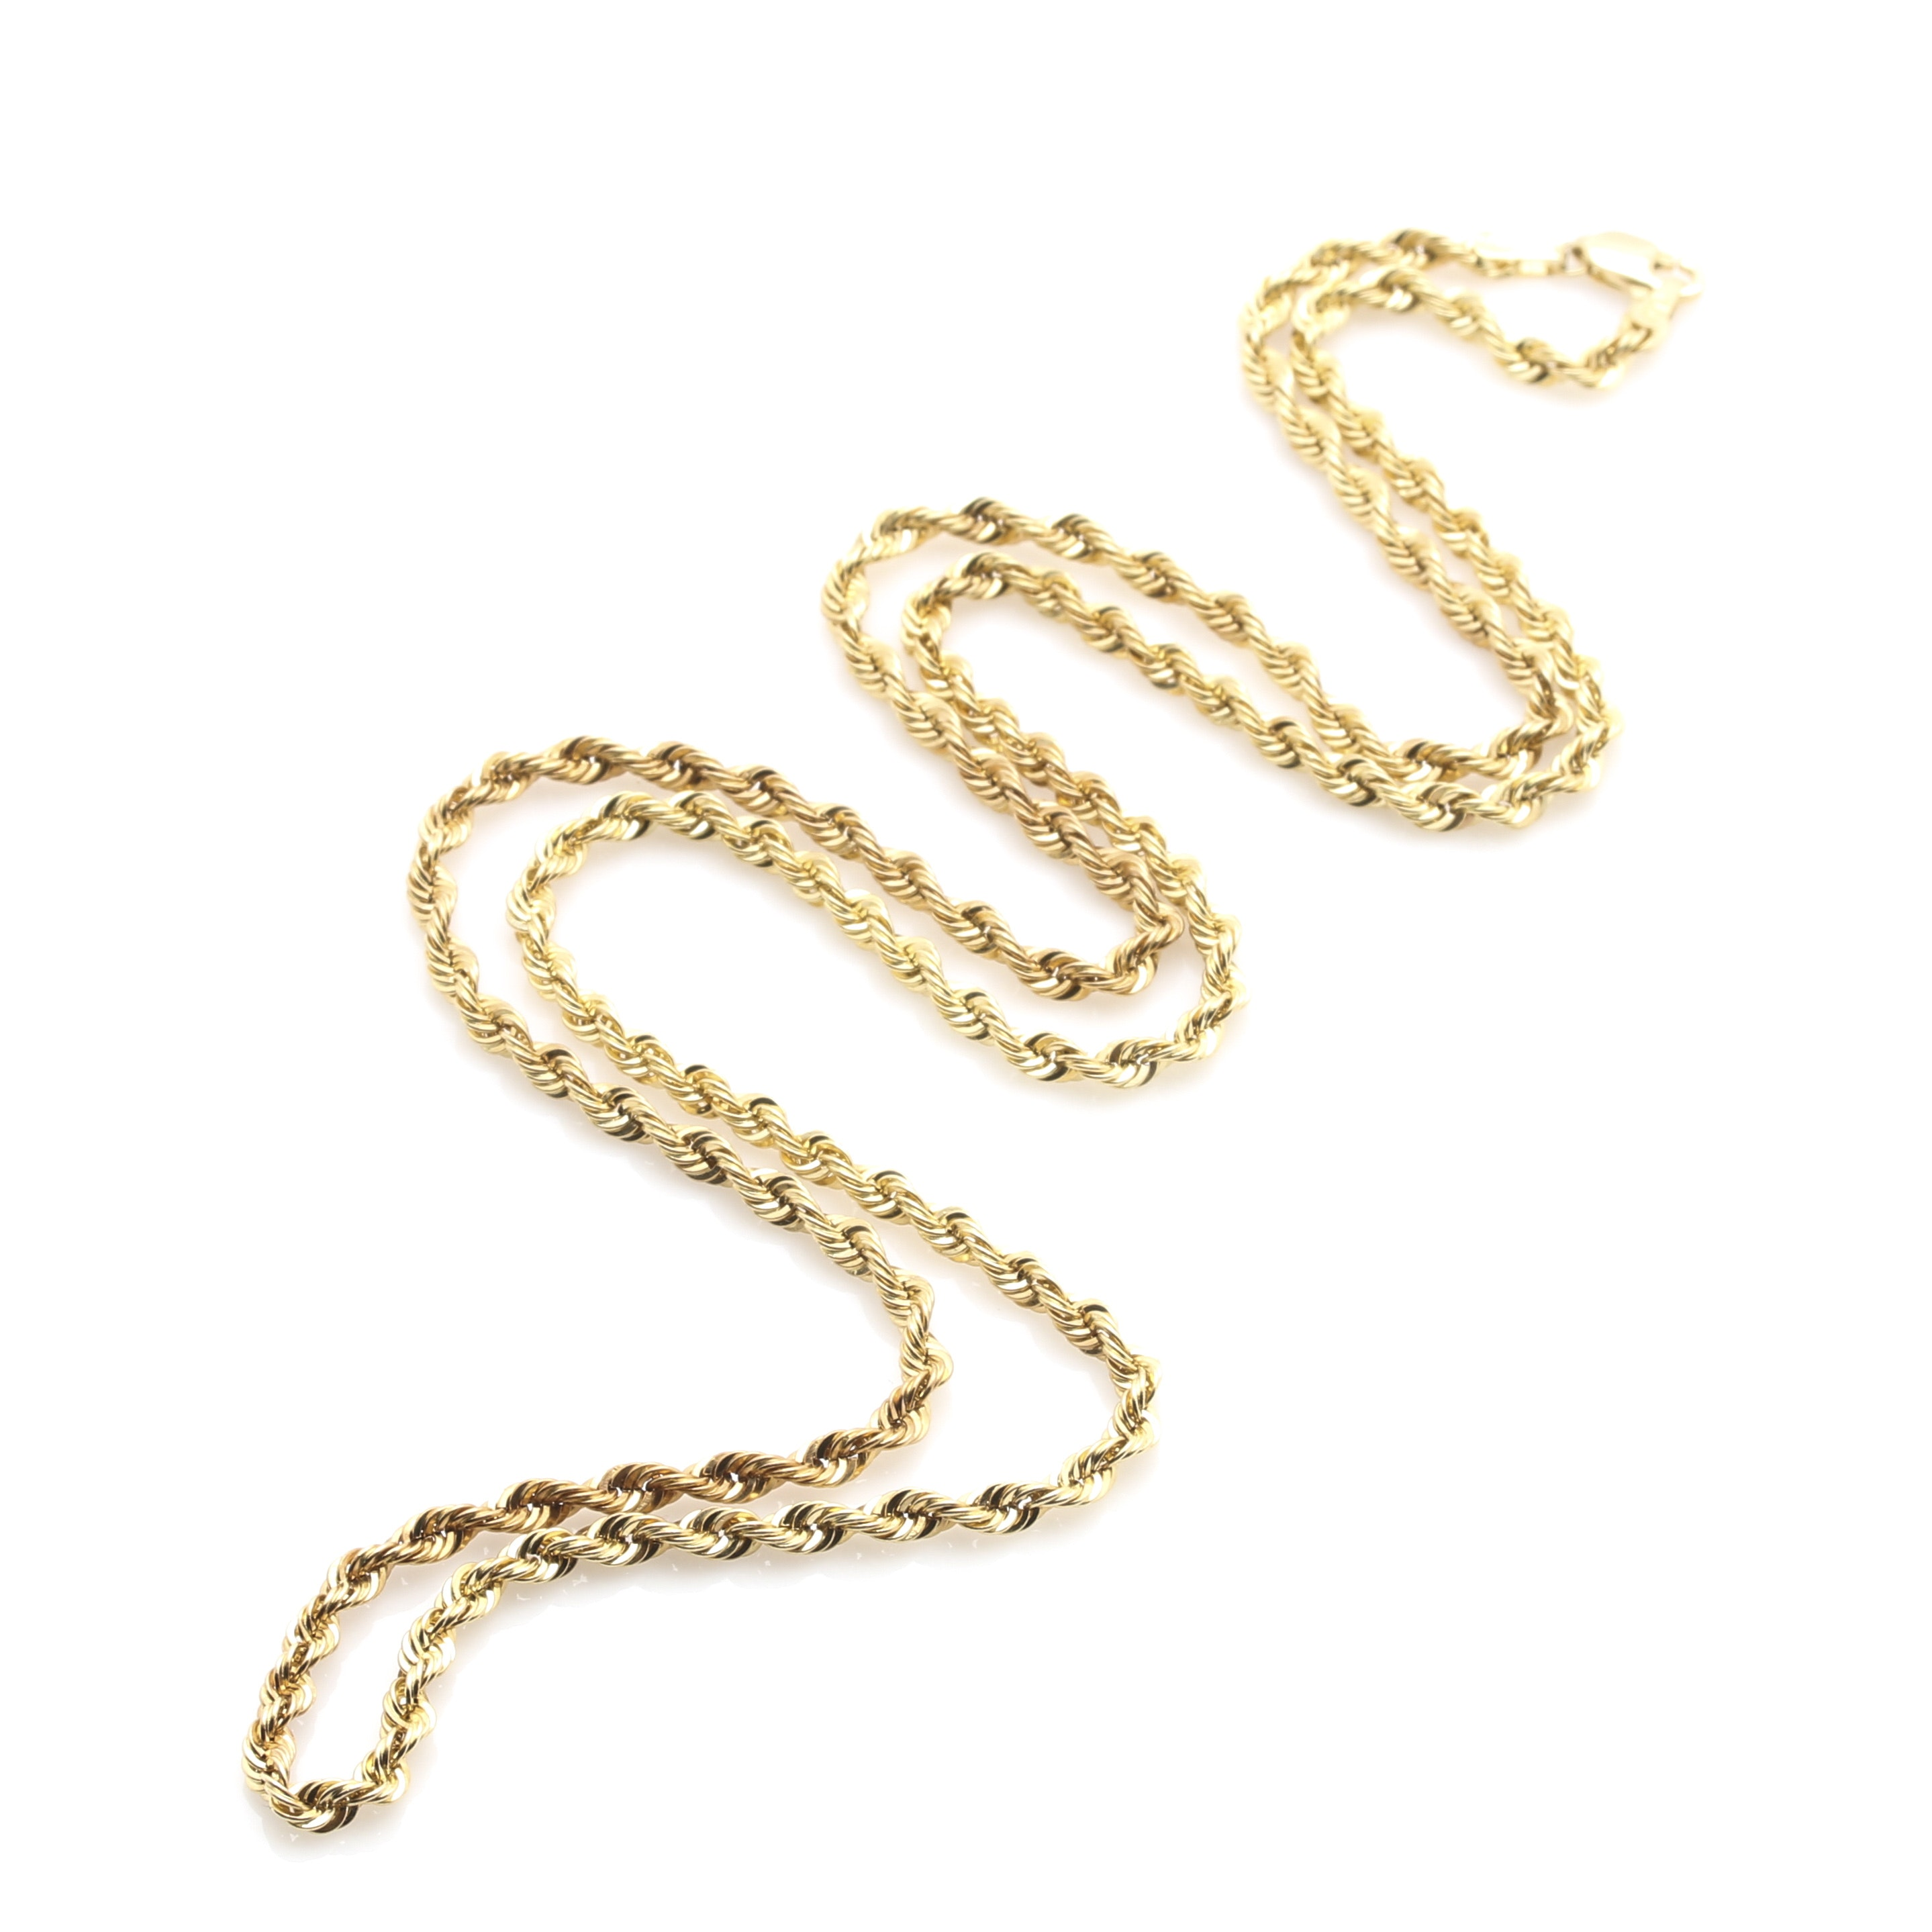 14K Yellow Gold French Rope Neck Chain